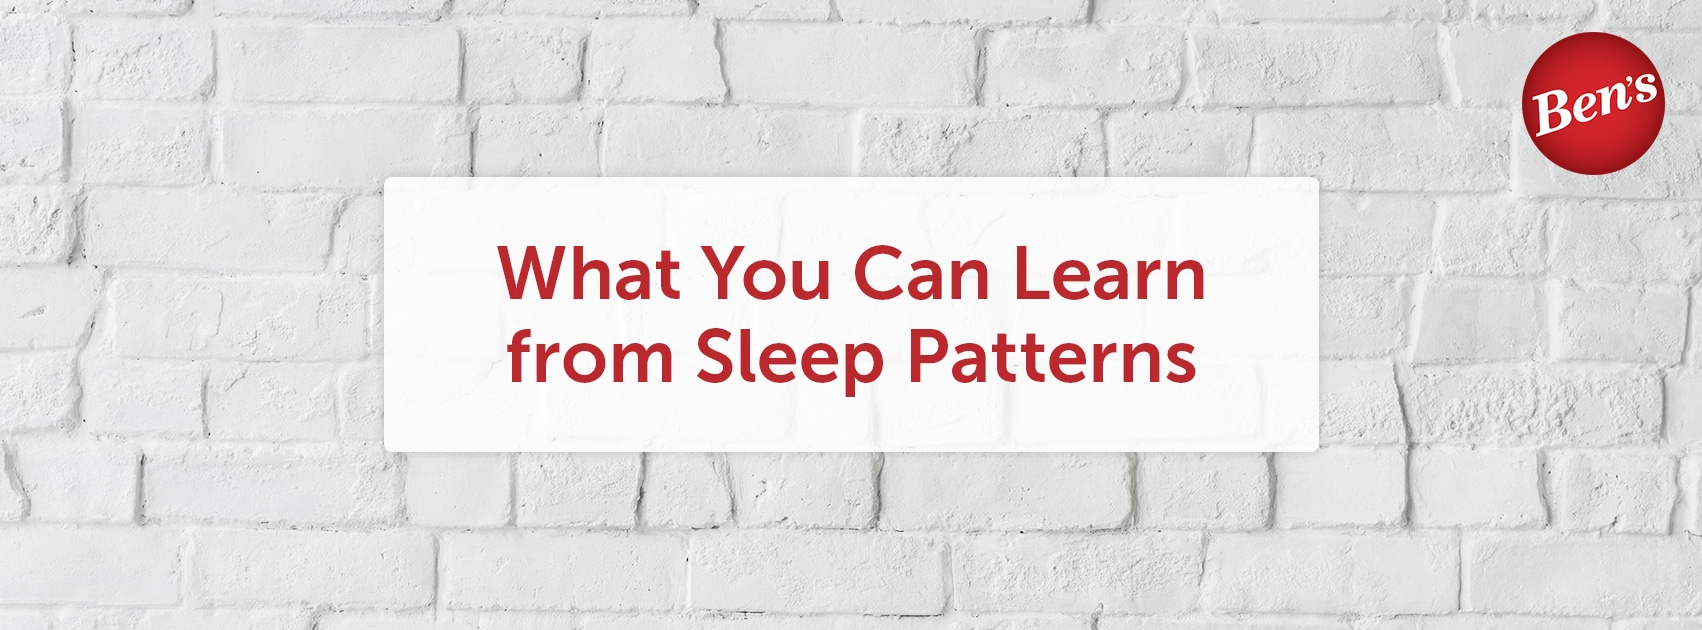 What you can learn from sleep patterns